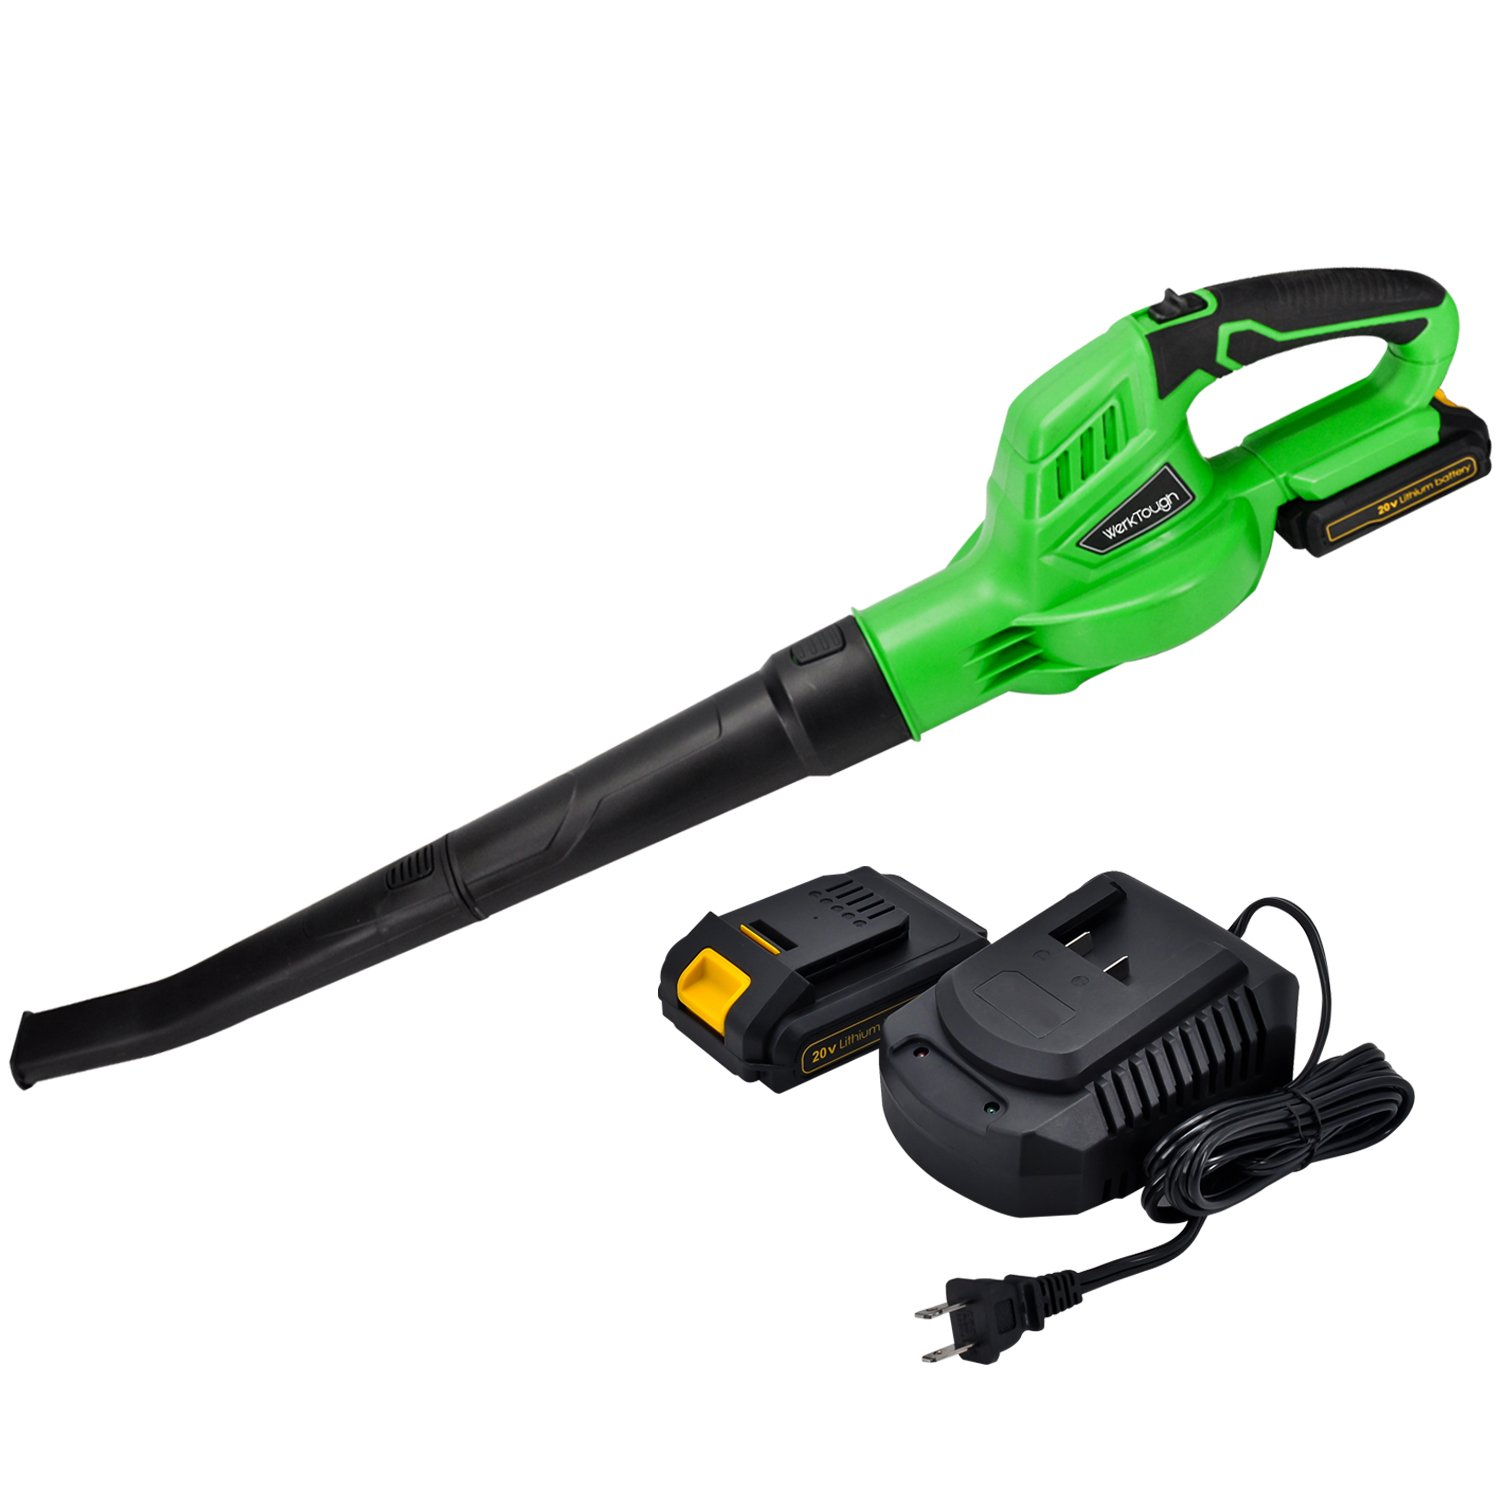 Werktough B001 Outdoor Tool 20V Li-ion Cordless Leaf Blower Sweeper 2.0 AH Battery Charger Included by Werktough (Image #1)